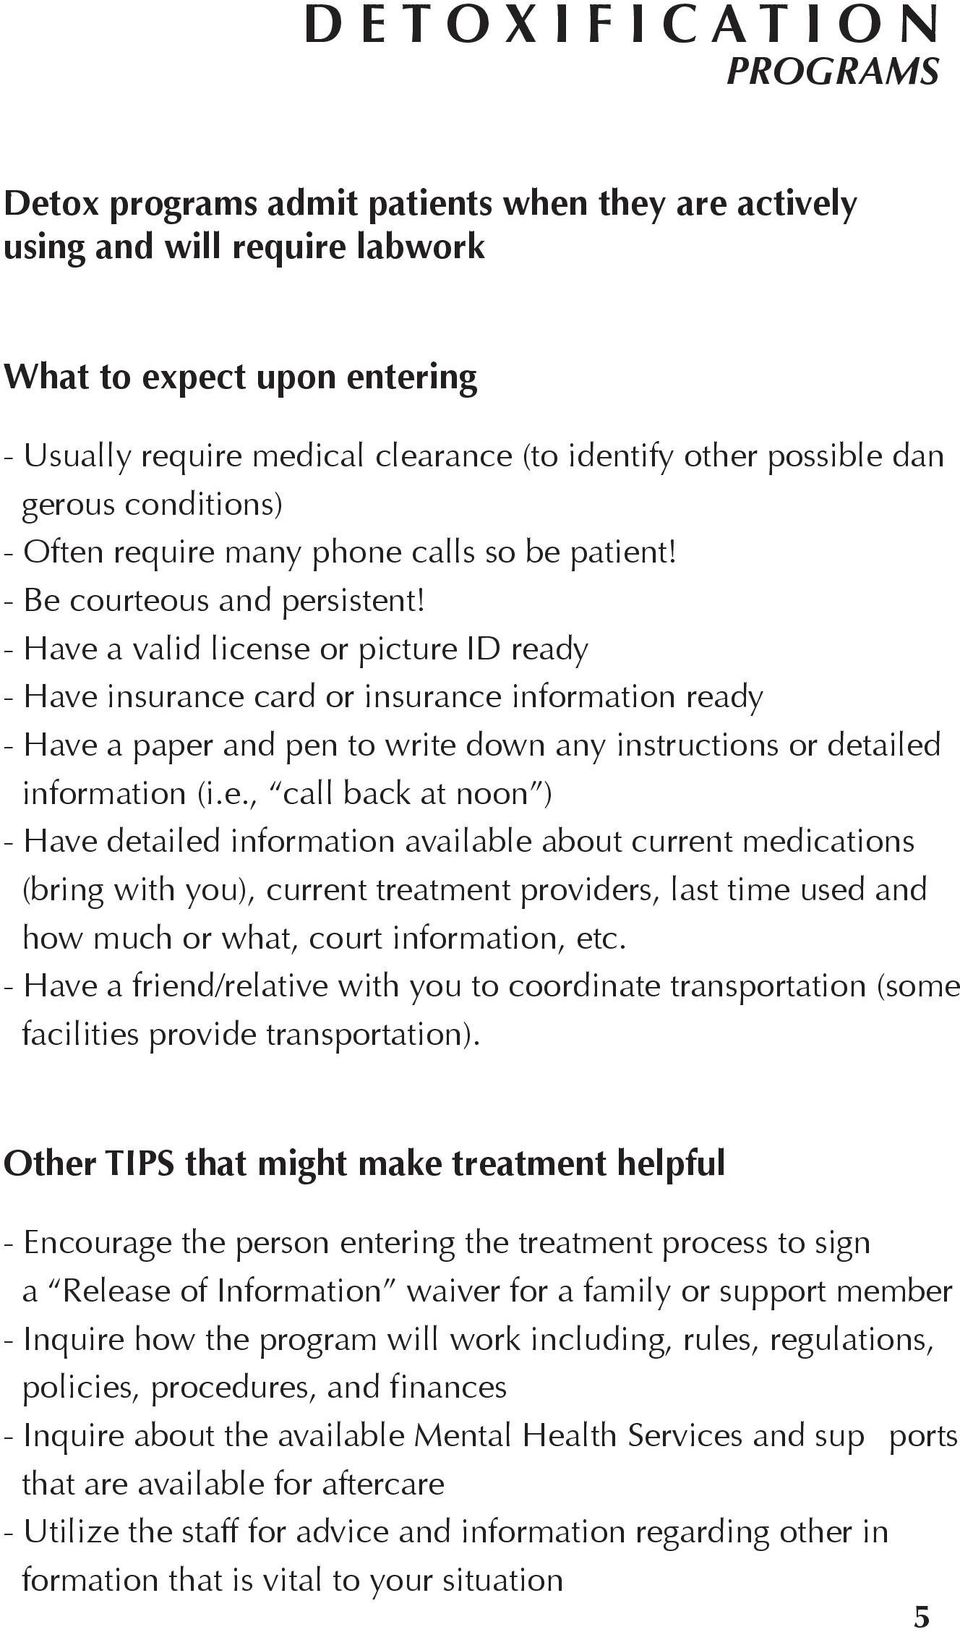 - Have a valid license or picture ID ready - Have insurance card or insurance information ready - Have a paper and pen to write down any instructions or detailed information (i.e., call back at noon ) - Have detailed information available about current medications (bring with you), current treatment providers, last time used and how much or what, court information, etc.